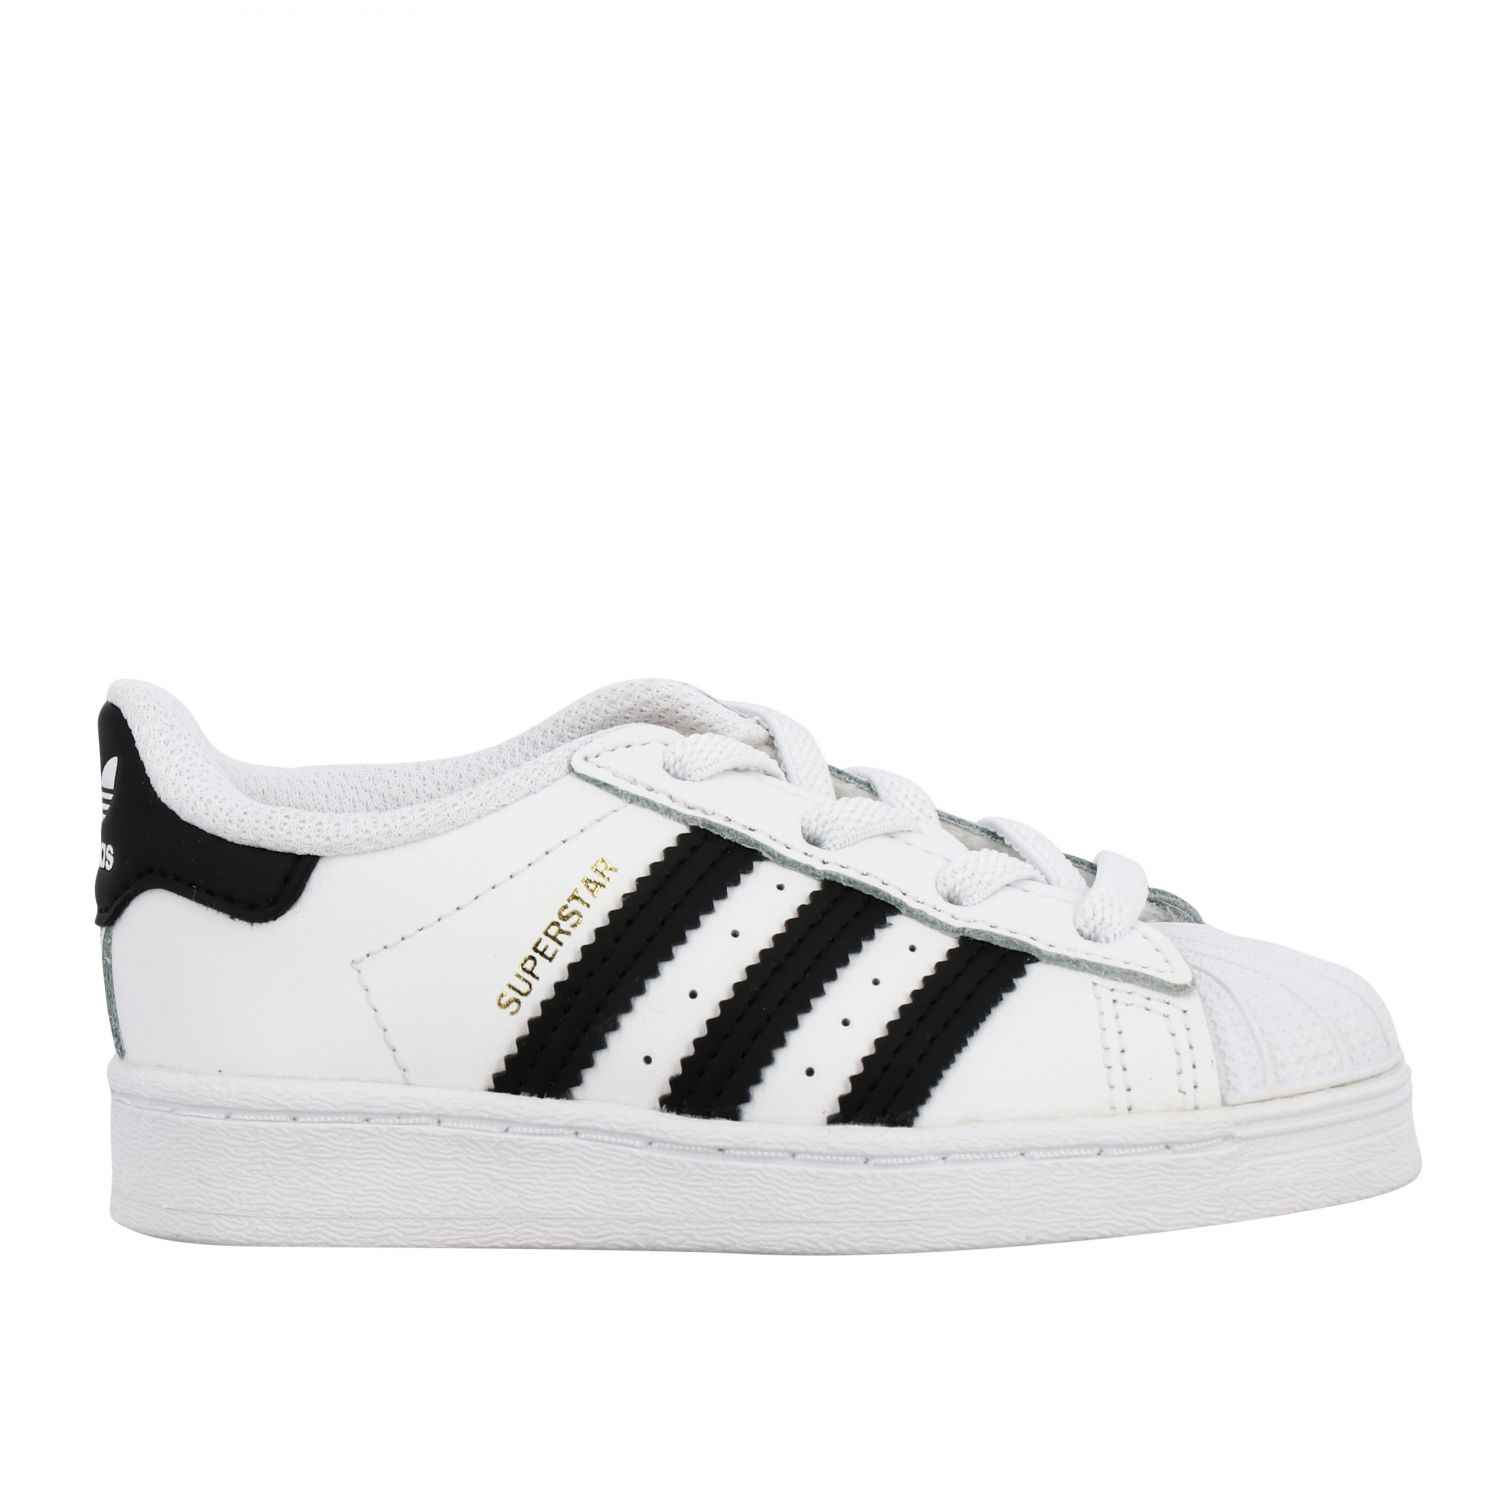 Shoes Adidas Originals: Superstar Adidas Originals leather sneakers white 1